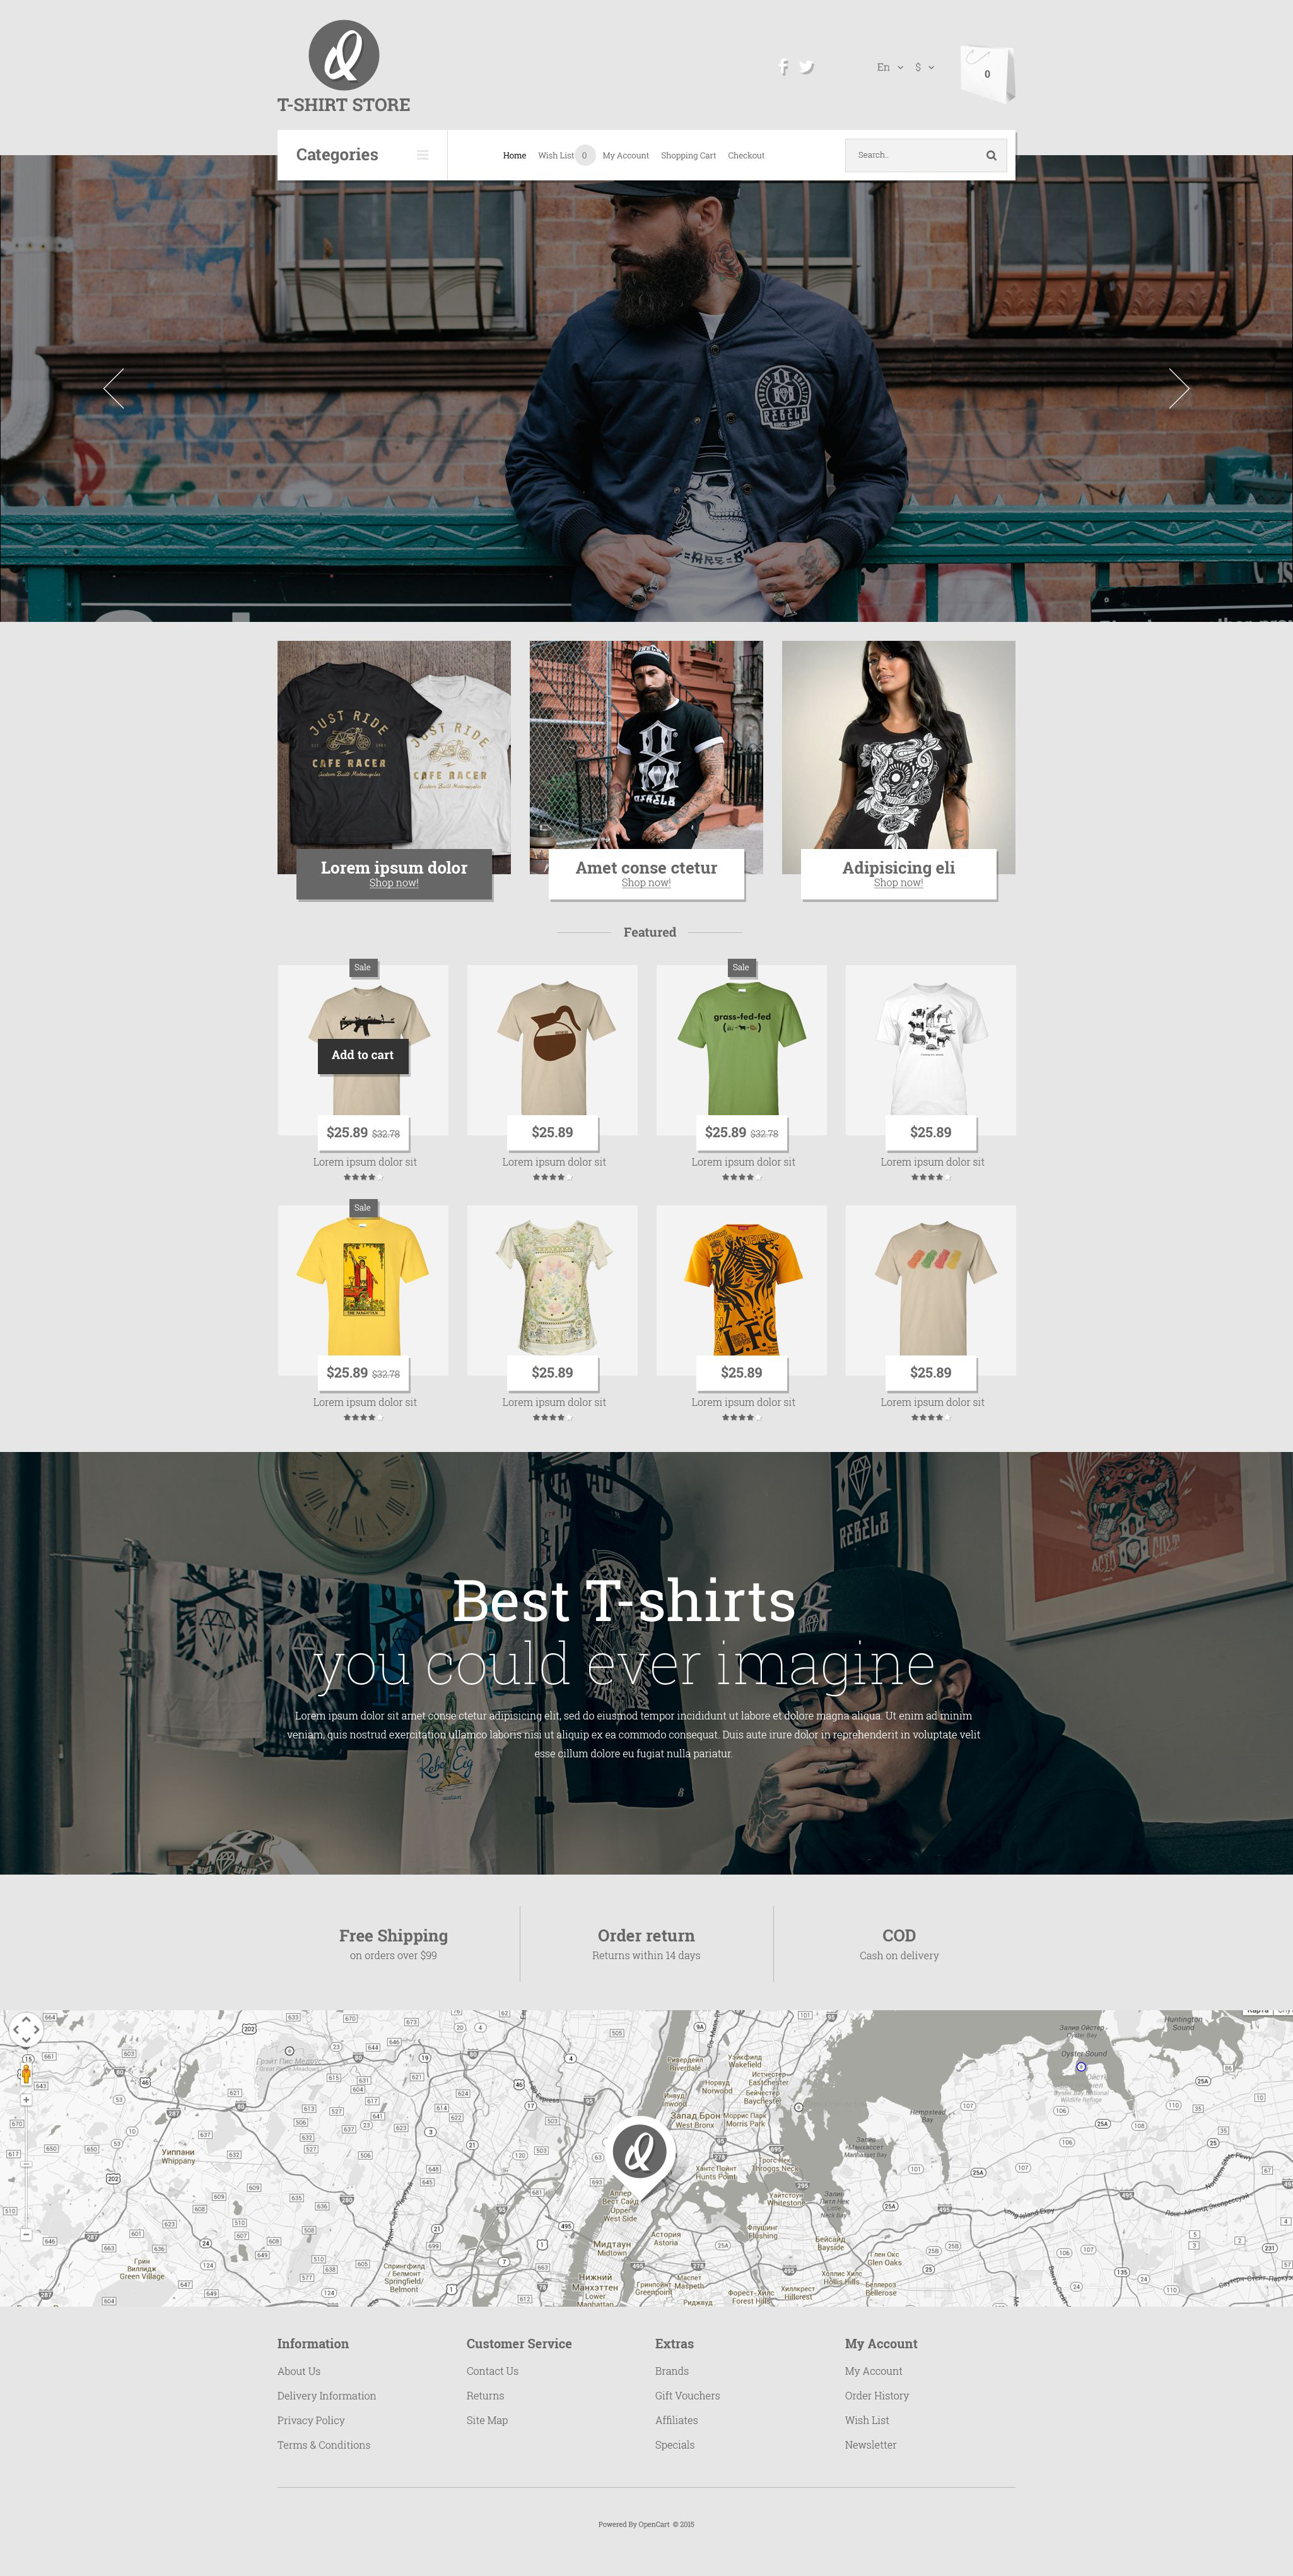 The T-shirts Clothes Online Shop OpenCart Design 53279, one of the best OpenCart templates of its kind (fashion, most popular), also known as t-shirts clothes online shop OpenCart template, fashion OpenCart template, pant OpenCart template, sweatshirt OpenCart template, belt OpenCart template, accessory OpenCart template, denim OpenCart template, outwear OpenCart template, pajama OpenCart template, robe OpenCart template, sweater OpenCart template, suit OpenCart template, short OpenCart template, underwear OpenCart template, socks OpenCart template, wallet OpenCart template, t-shirt OpenCart template, jeans OpenCart template, jacket OpenCart template, pullover OpenCart template, swimsuit OpenCart template, thong OpenCart template, coverall OpenCart template, bag OpenCart template, shoes OpenCart template, dress OpenCart template, tie OpenCart template, brassier OpenCart template, prices OpenCart template, eye OpenCart template, wear OpenCart template, perfumes and related with t-shirts clothes online shop, fashion, pant, sweatshirt, belt, accessory, denim, outwear, pajama, robe, sweater, suit, short, underwear, socks, wallet, t-shirt, jeans, jacket, pullover, swimsuit, thong, coverall, bag, shoes, dress, tie, brassier, prices, eye, wear, perfumes, etc.